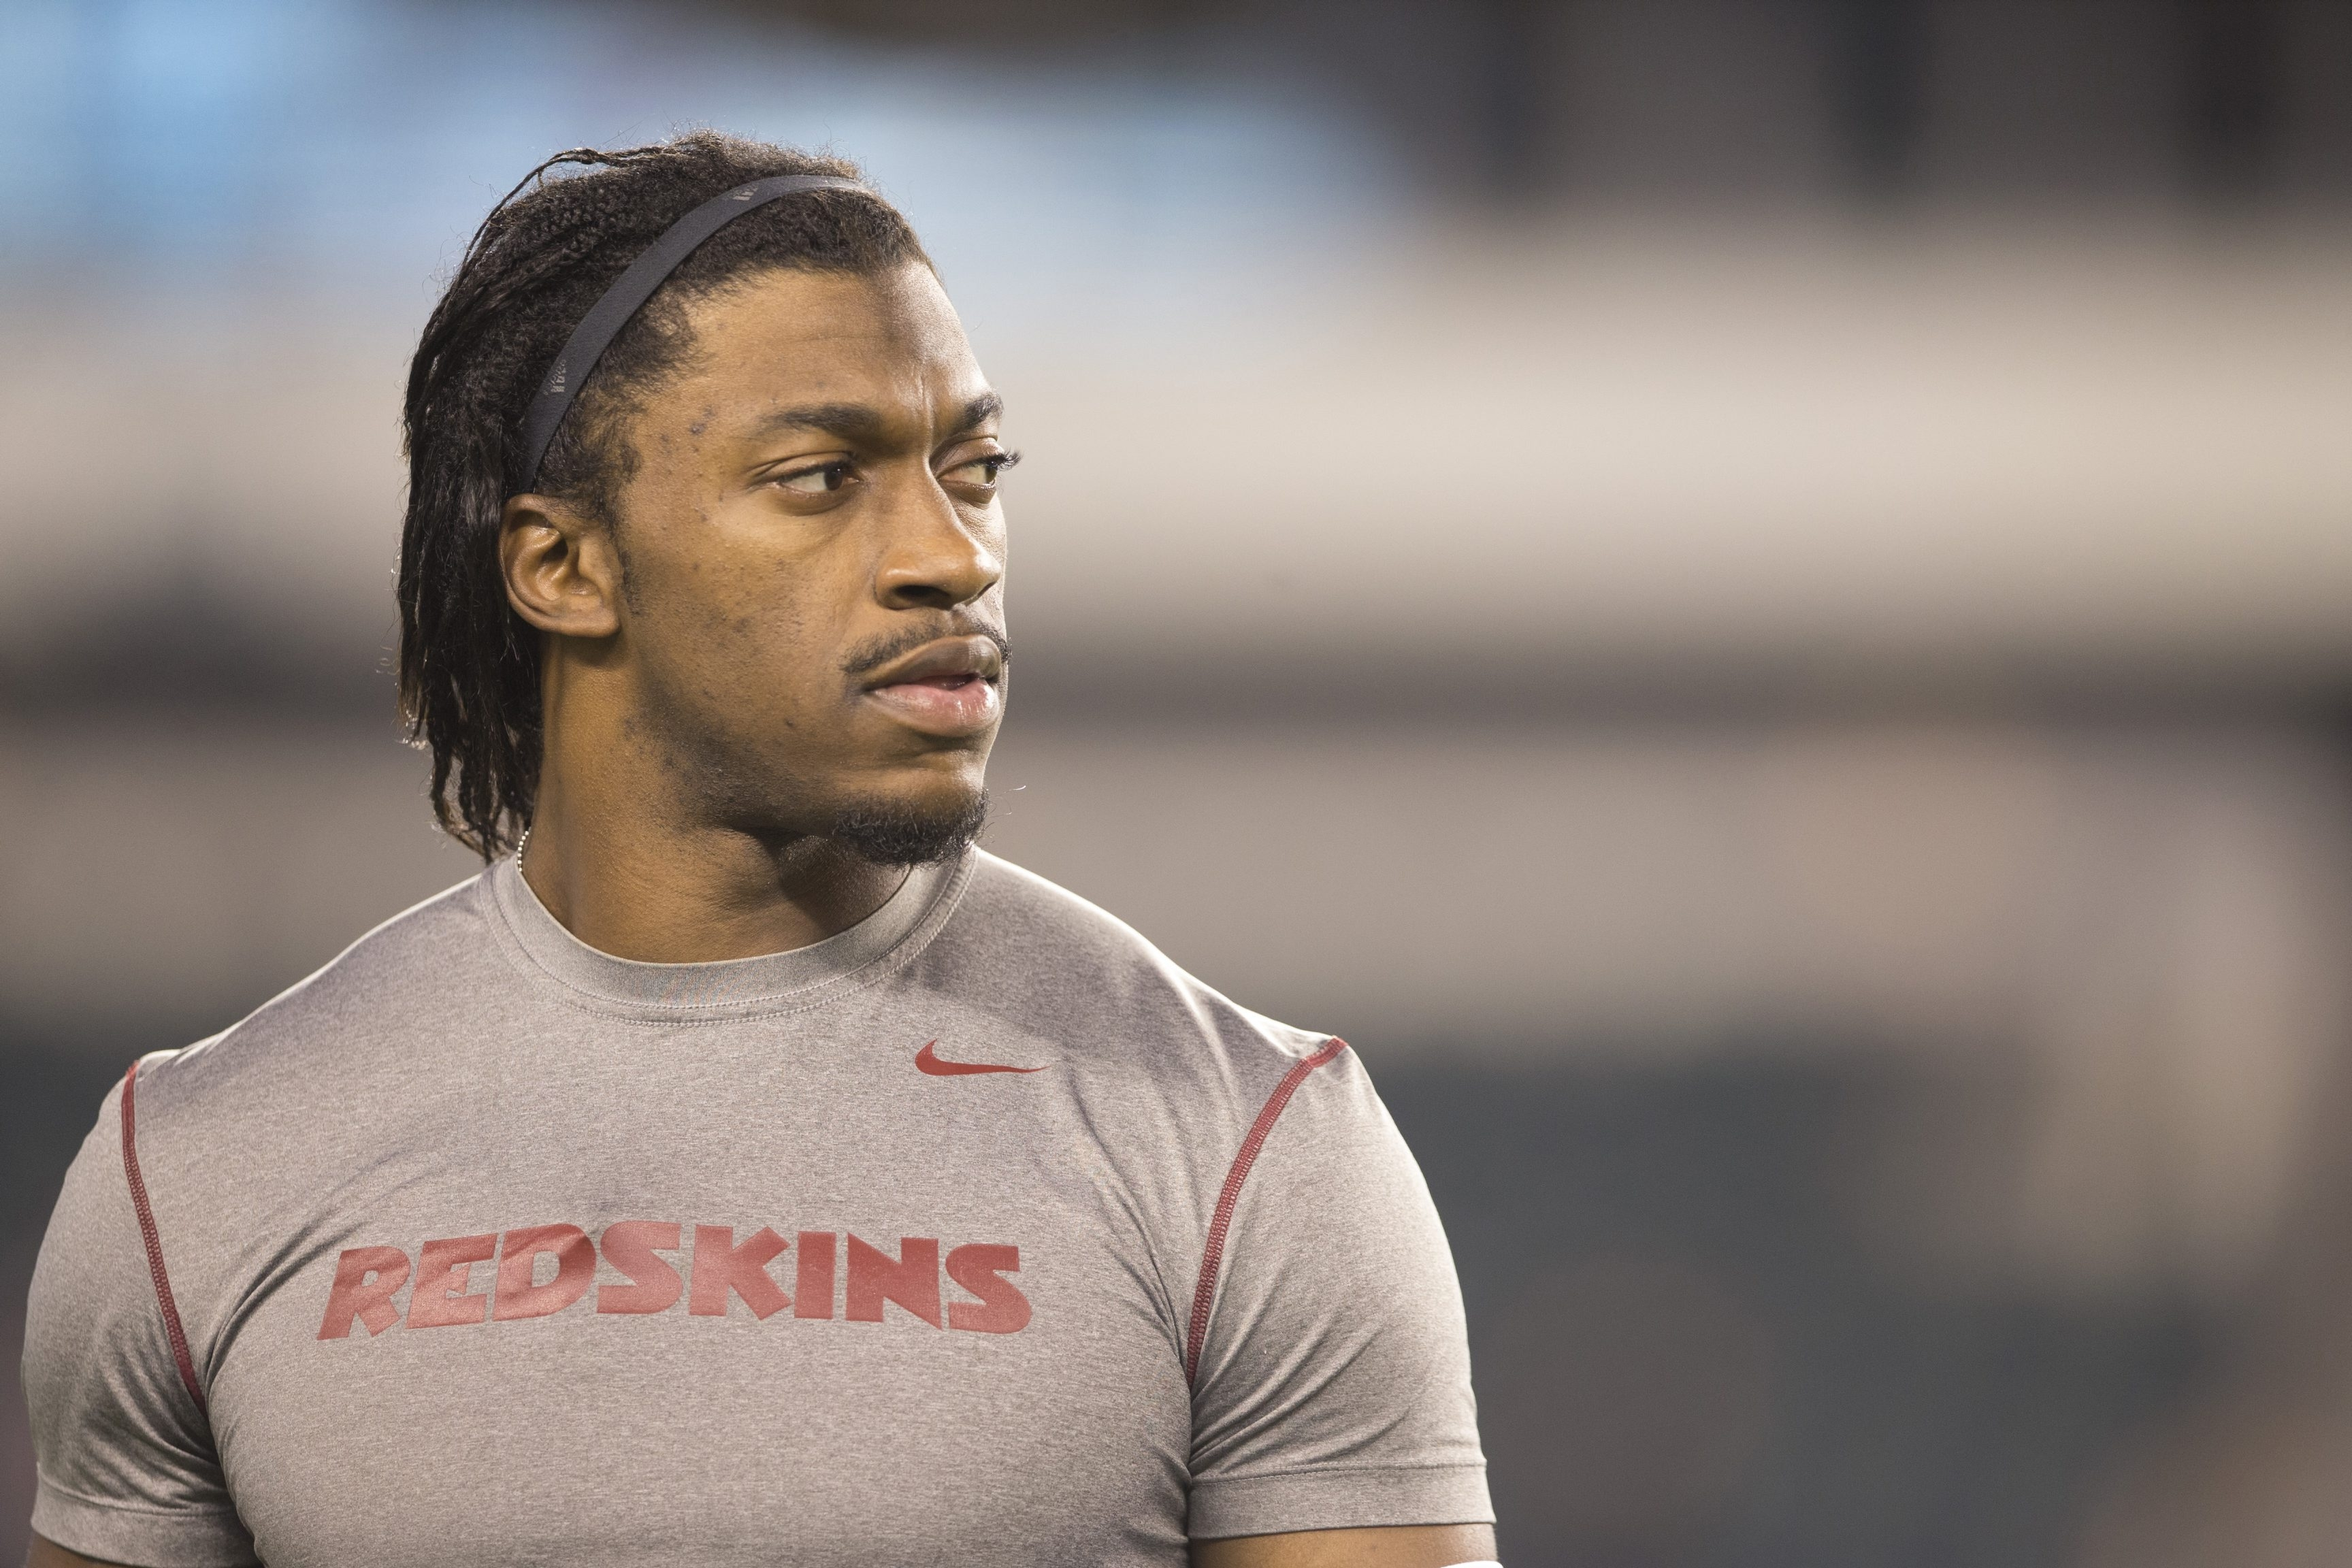 Robert Griffin III is going to be looking for a team after the Redskins cut ties with him.